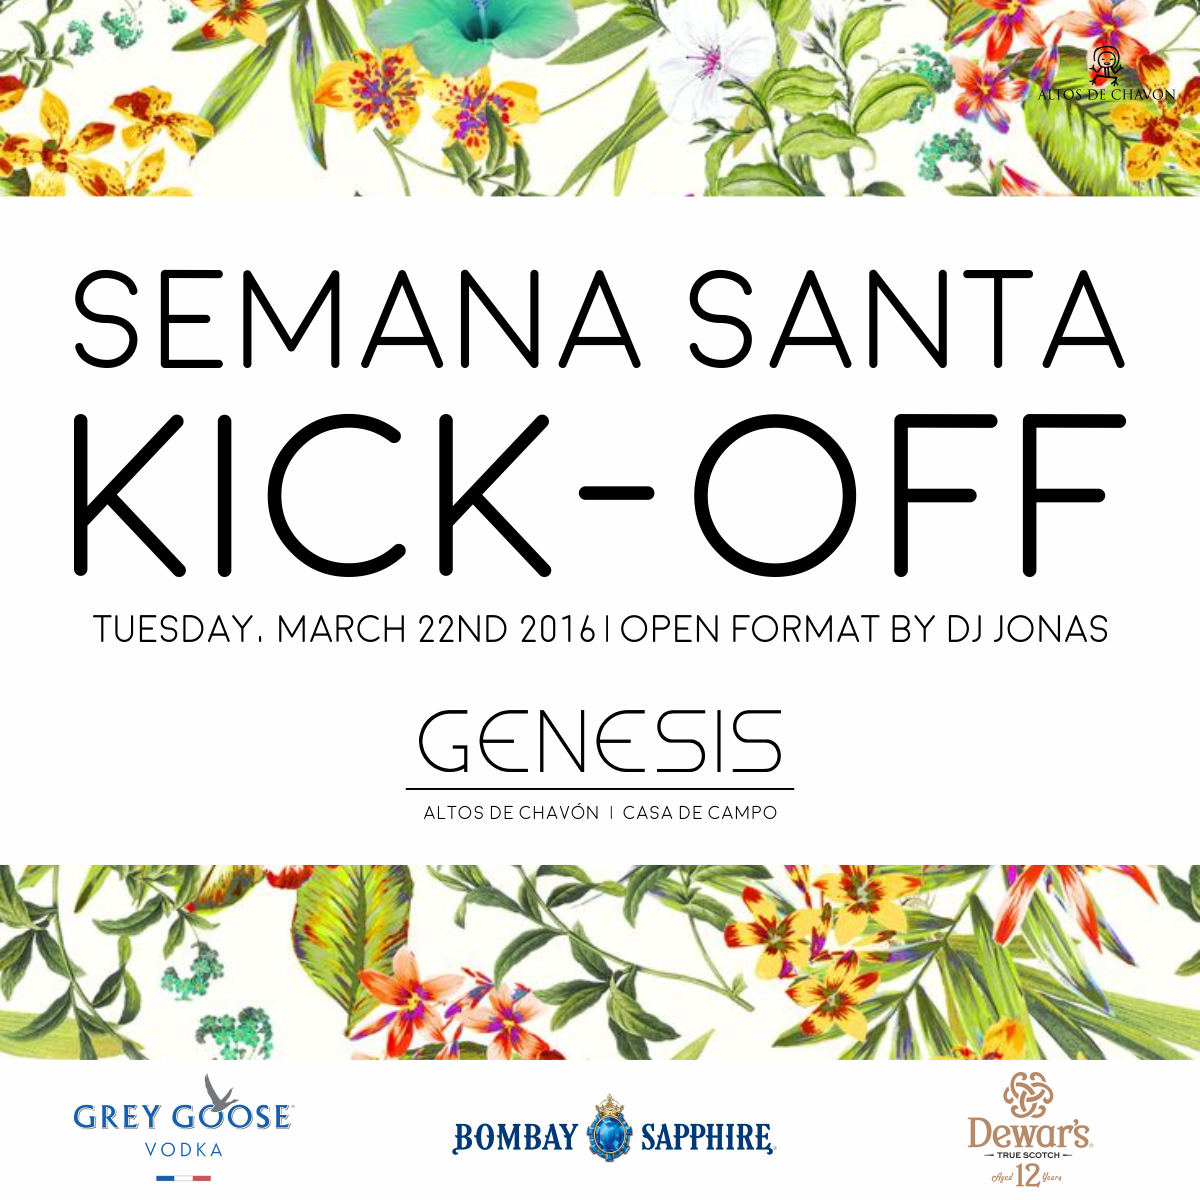 Semana Santa Kickoff Flyer — Night Club